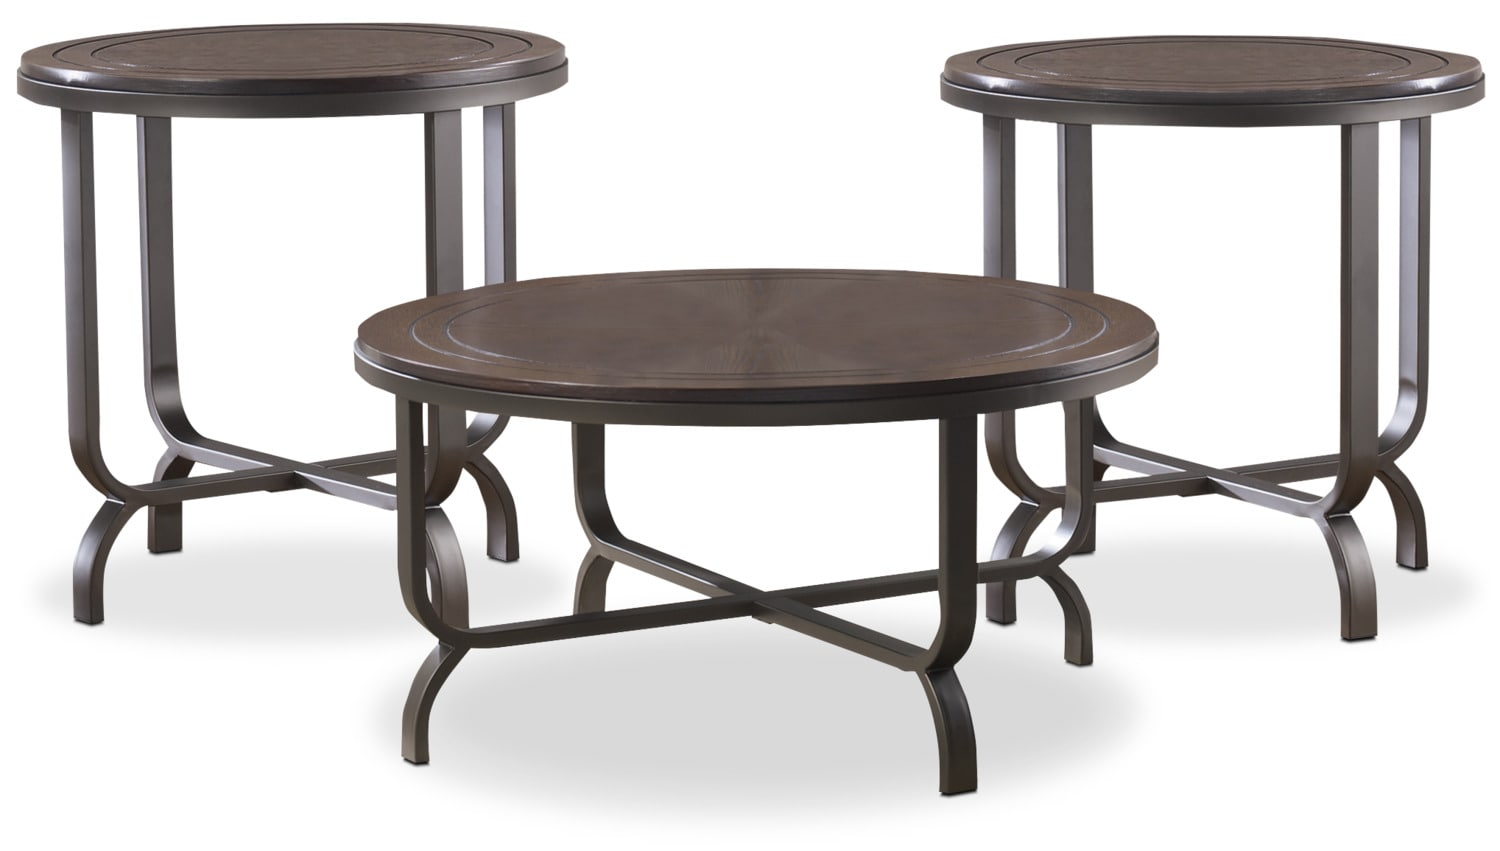 Accent and Occasional Furniture - Ferlin 3-Piece Coffee and Two End Tables Package